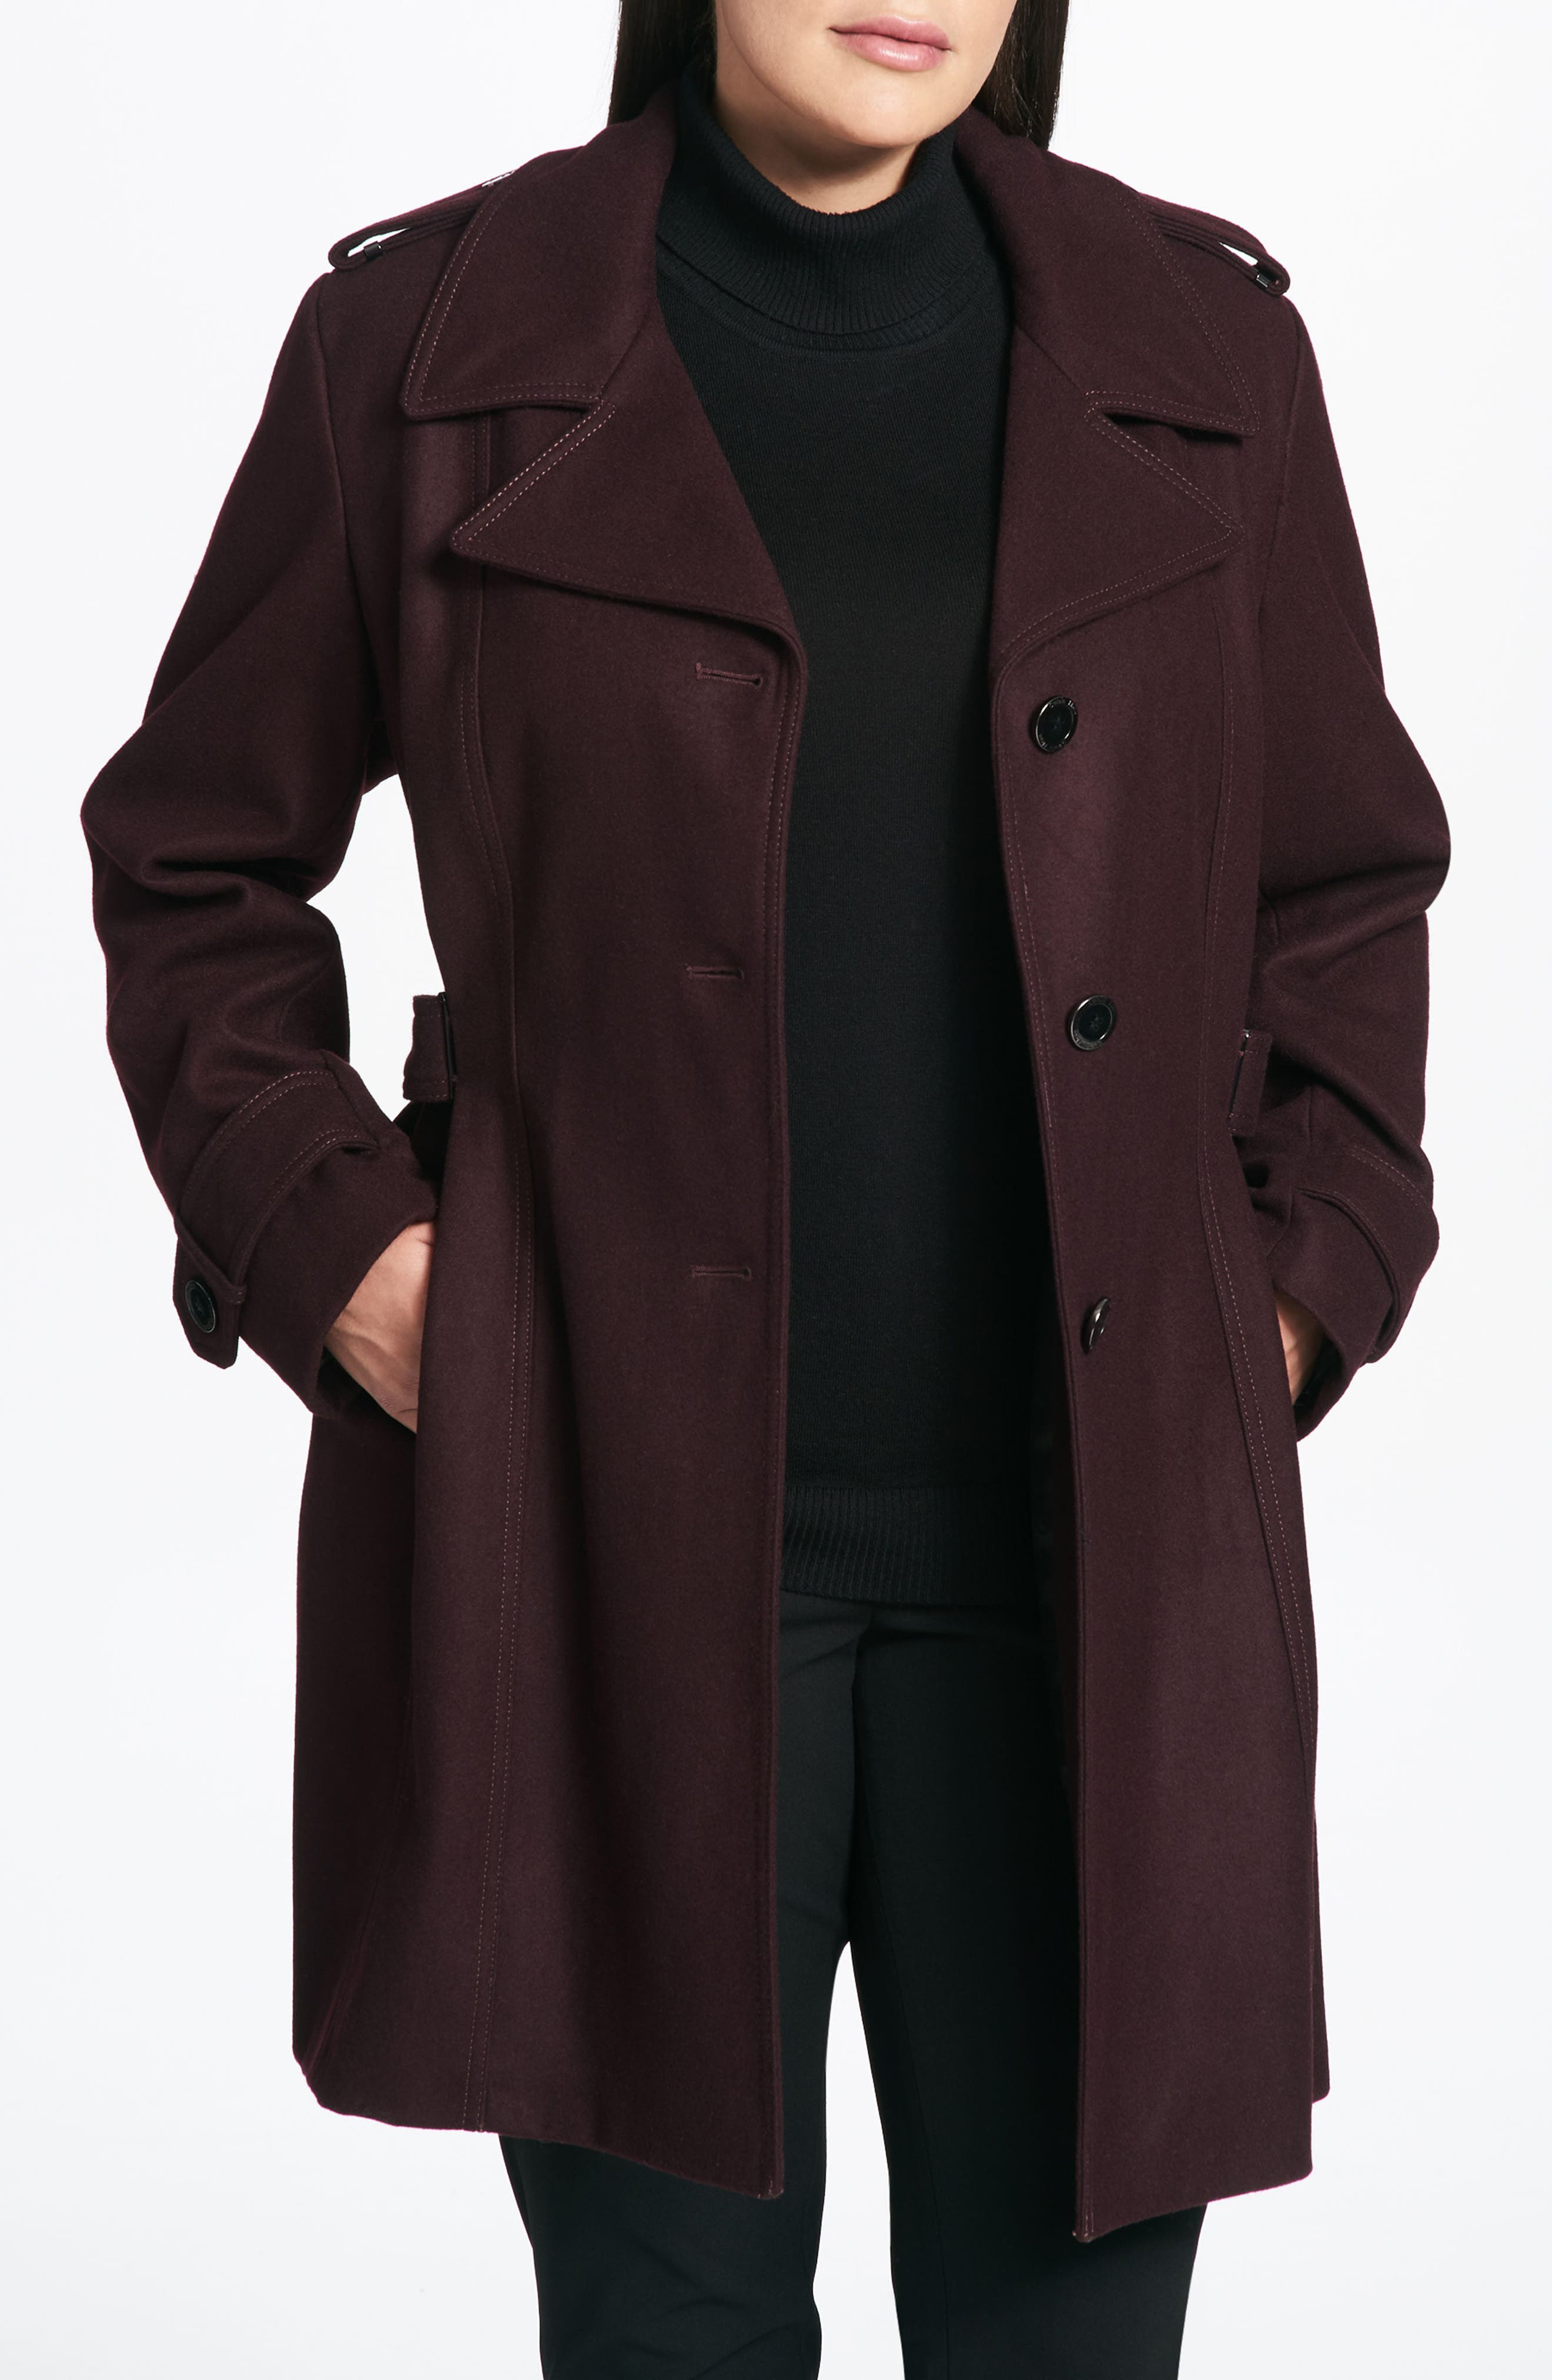 Single Breasted Wool Blend Trench Coat,                             Alternate thumbnail 3, color,                             930